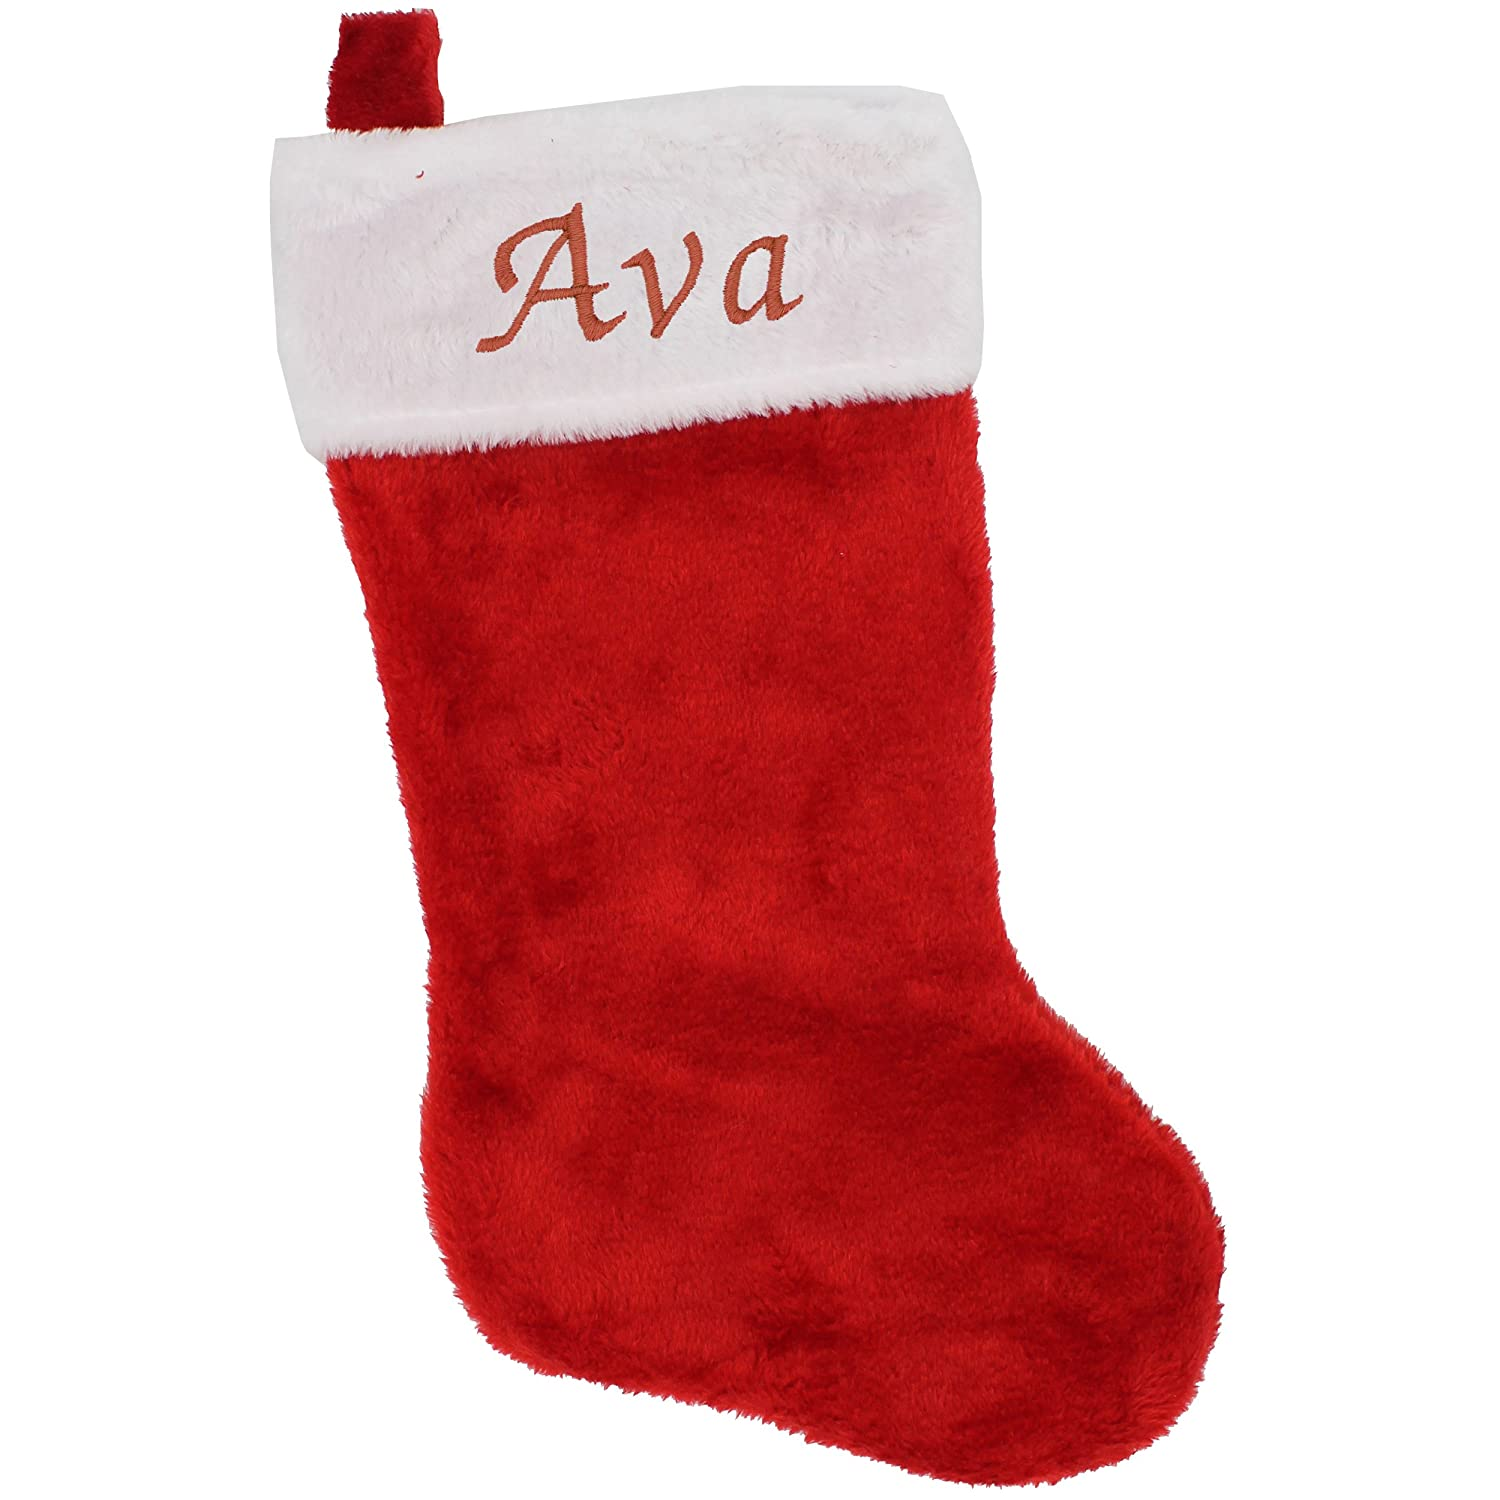 a6a66735ff4 Amazon.com  Monogrammed Christmas Stocking with Name - Classic Red and White  Personalized Gift for Xmas Stockings - Embroidered for Free  Home   Kitchen